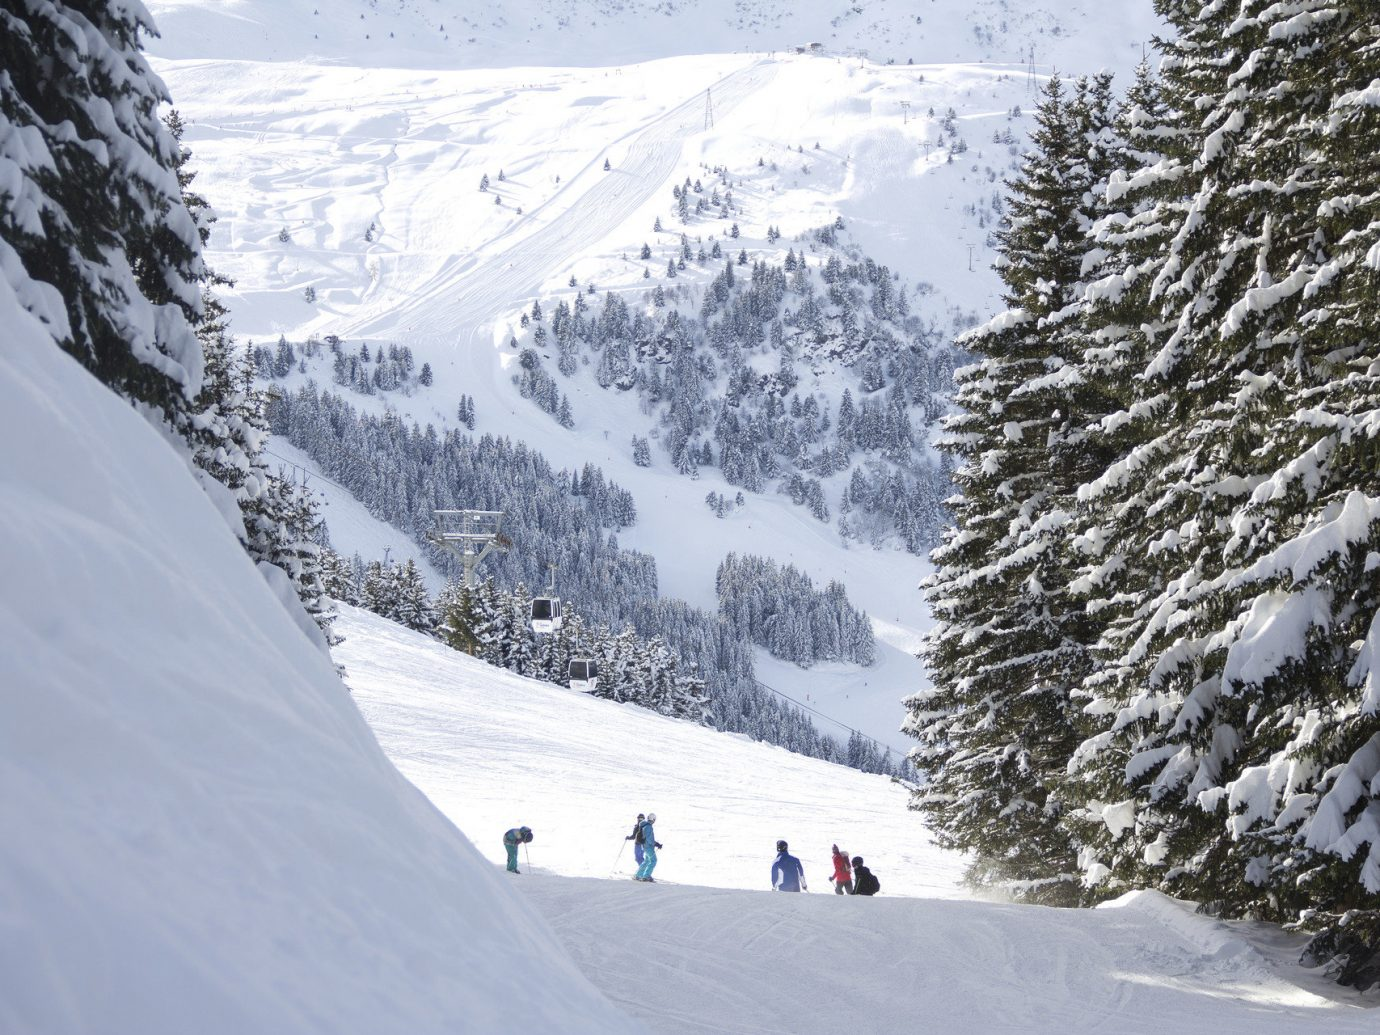 alpine skiing East Coast USA Hotels Trip Ideas Weekend Getaways outdoor snow tree Nature mountain Winter piste weather geological phenomenon people mountain range Ski slope footwear ski equipment skiing season winter sport Resort sports ski slope ski mountaineering ski touring nordic skiing alps sports equipment ice